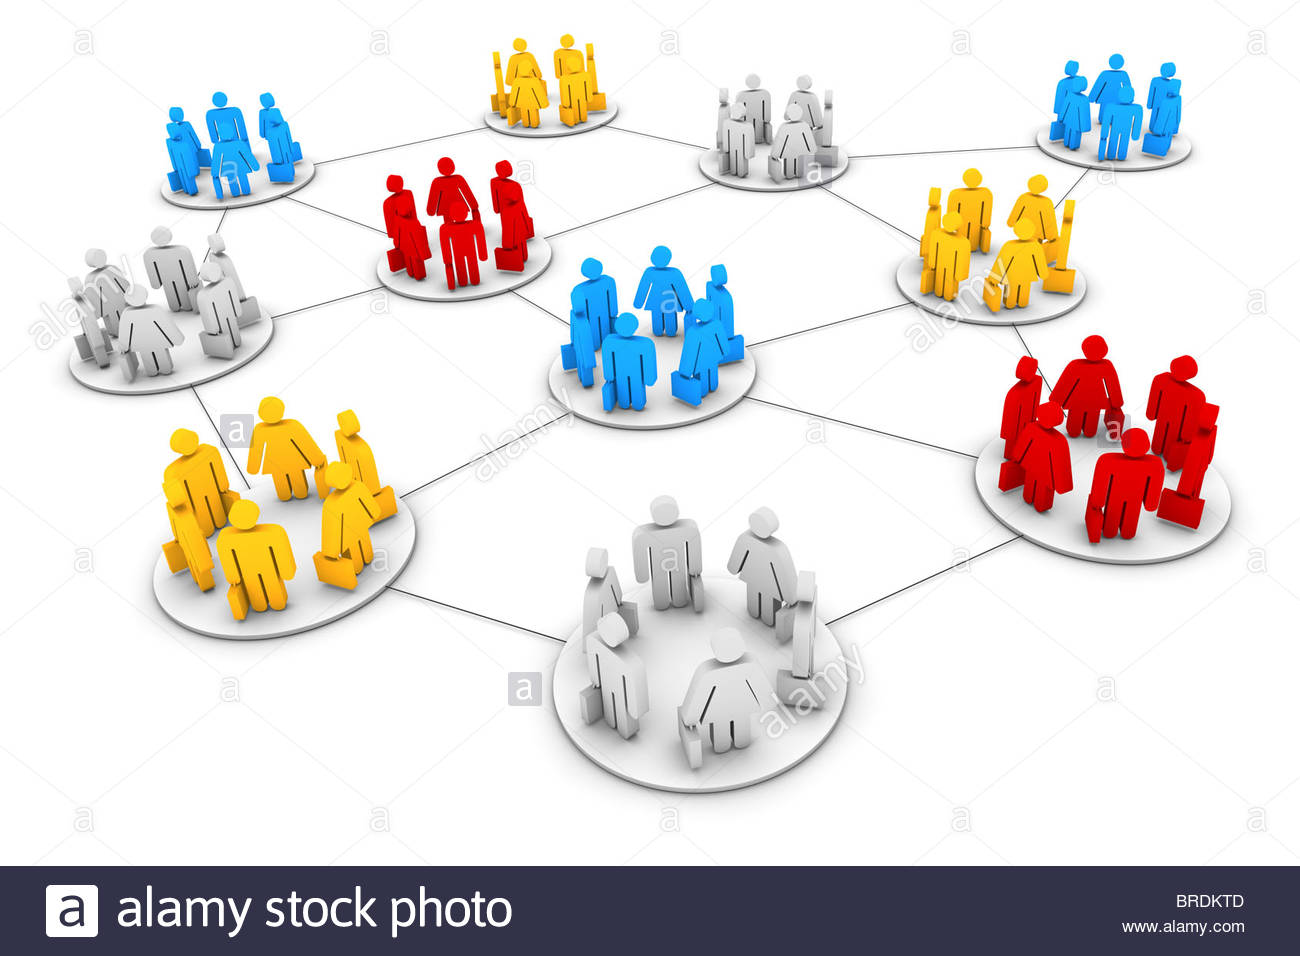 Business Network - Stock Image